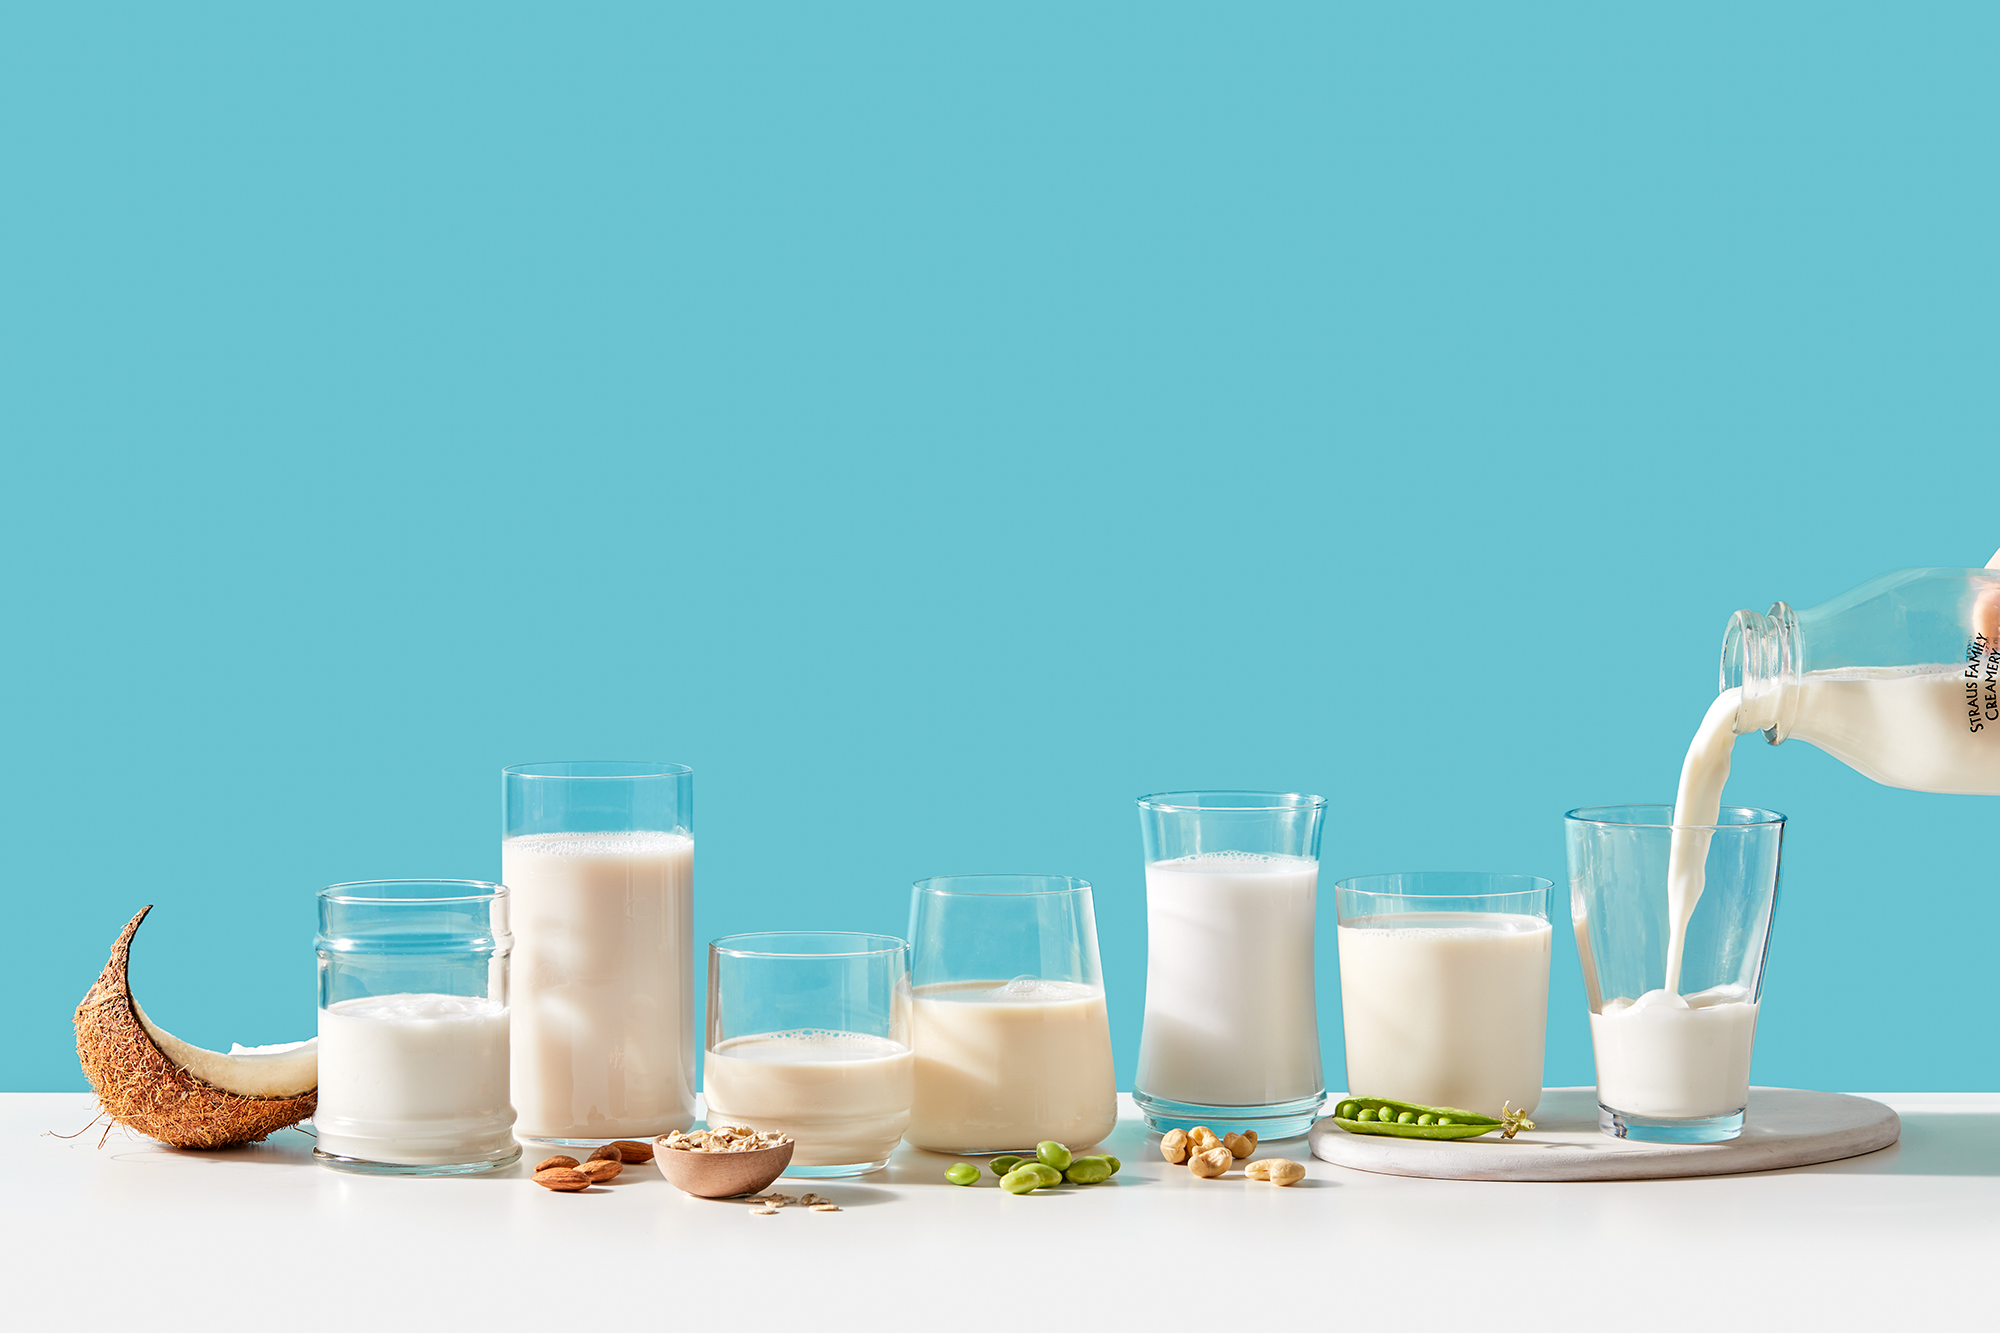 Seven glasses of dairy alternative milks on a blue background